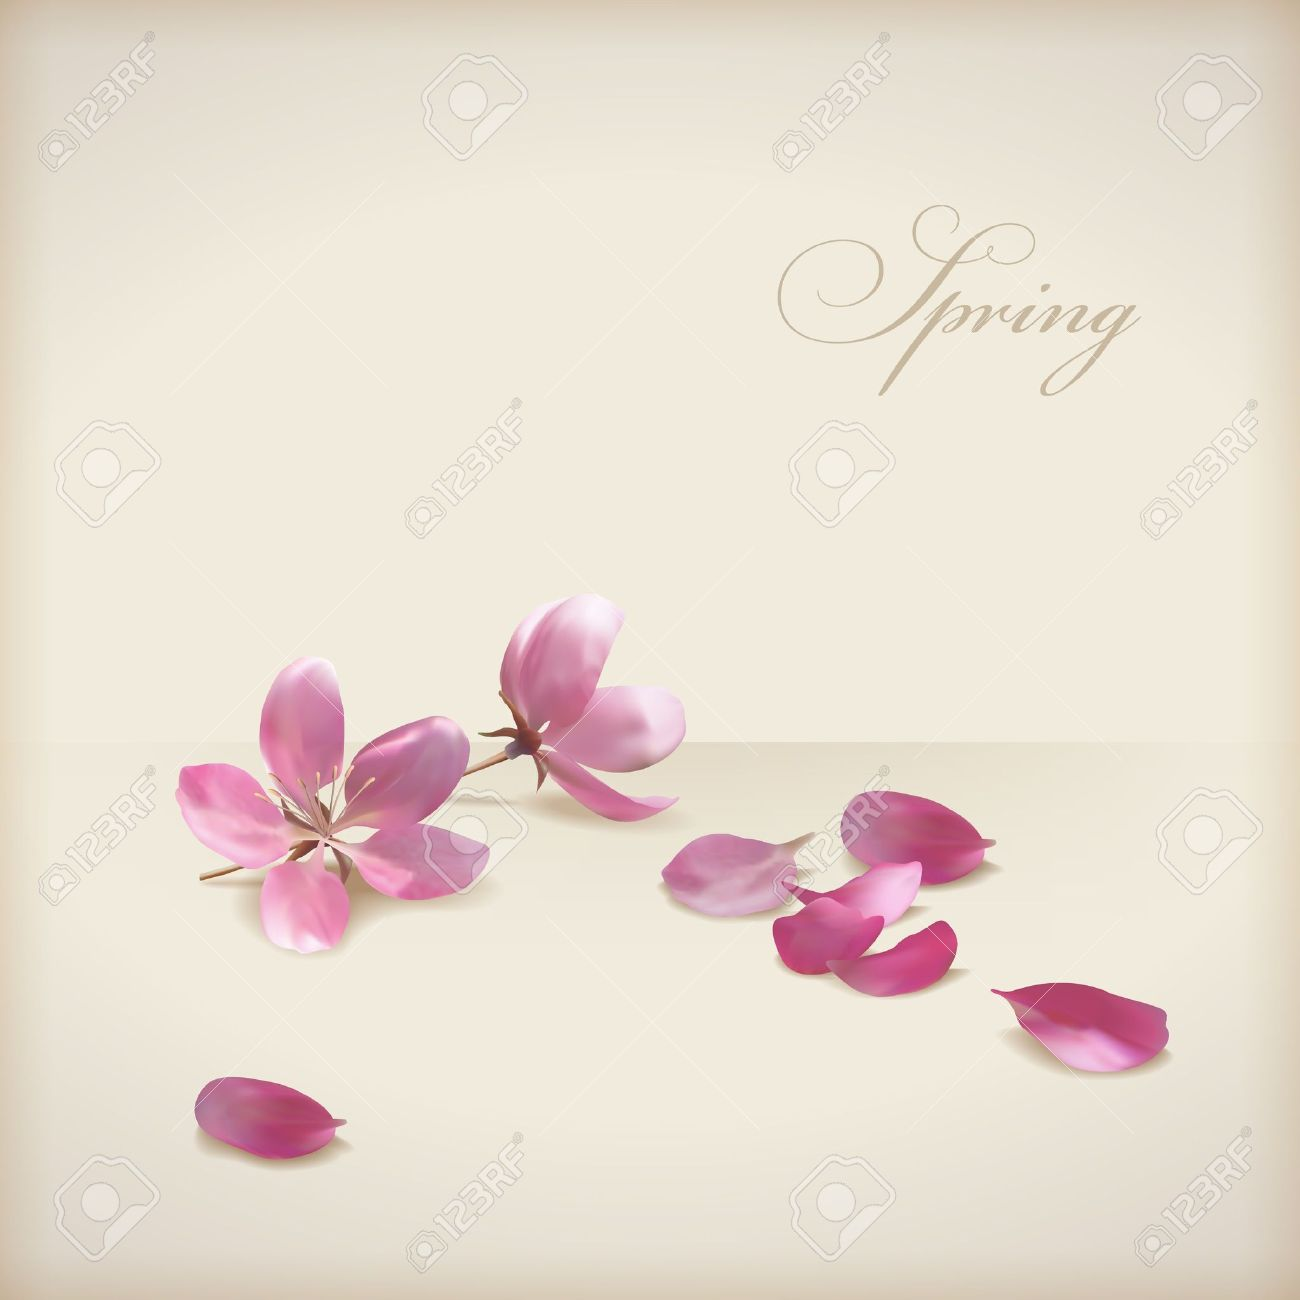 Floral vector cherry blossom flowers spring design  Pink flowers, freshly fallen petals and text Stock Vector - 17803740